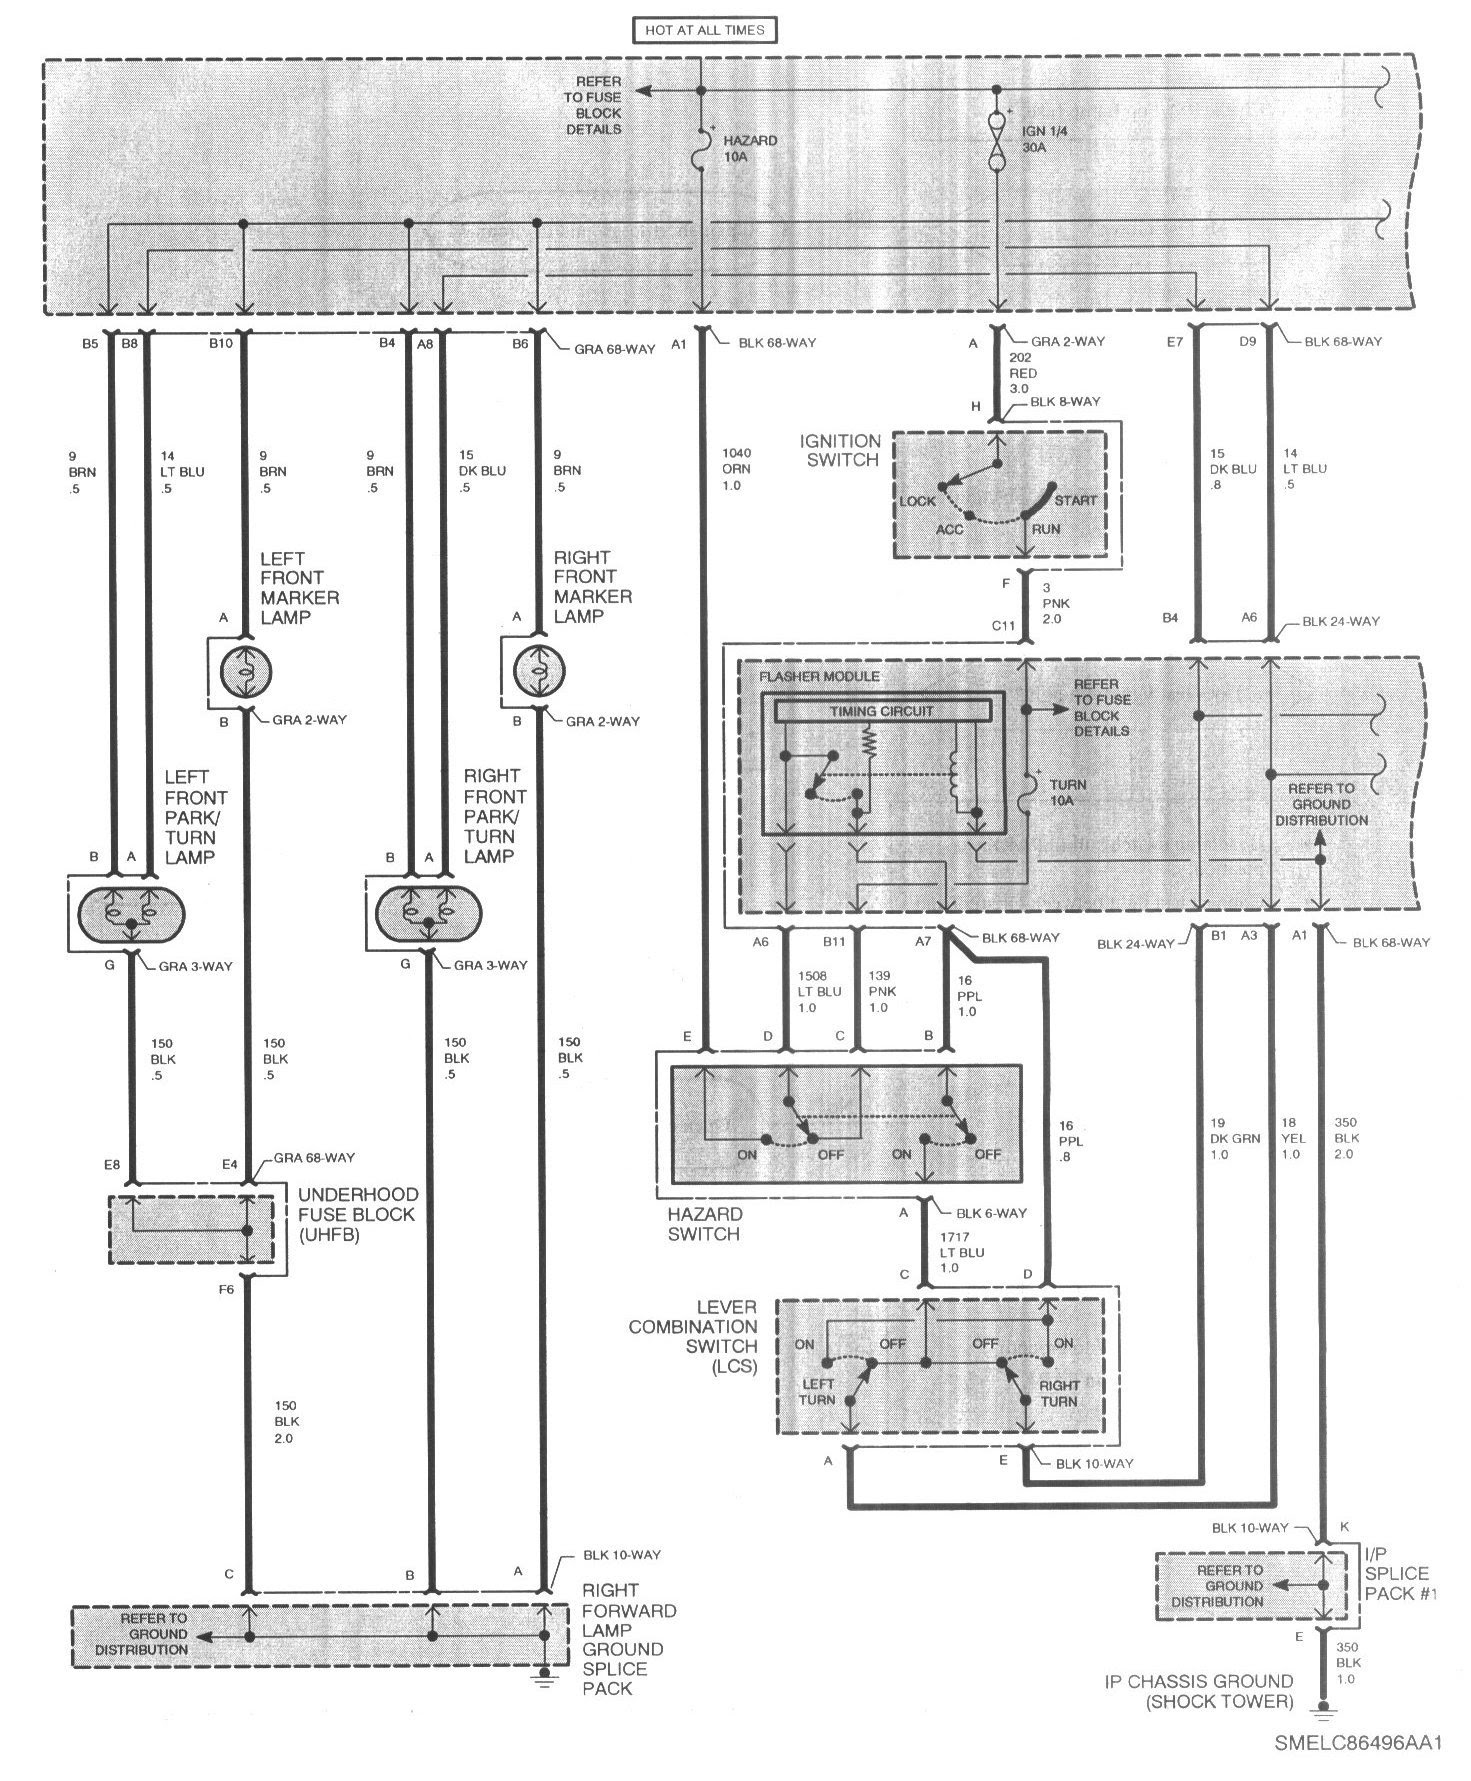 1995 Saturn Ignition Switch Wiring Diagram Wiring Diagram For Heated Seats Plymouth Yenpancane Jeanjaures37 Fr